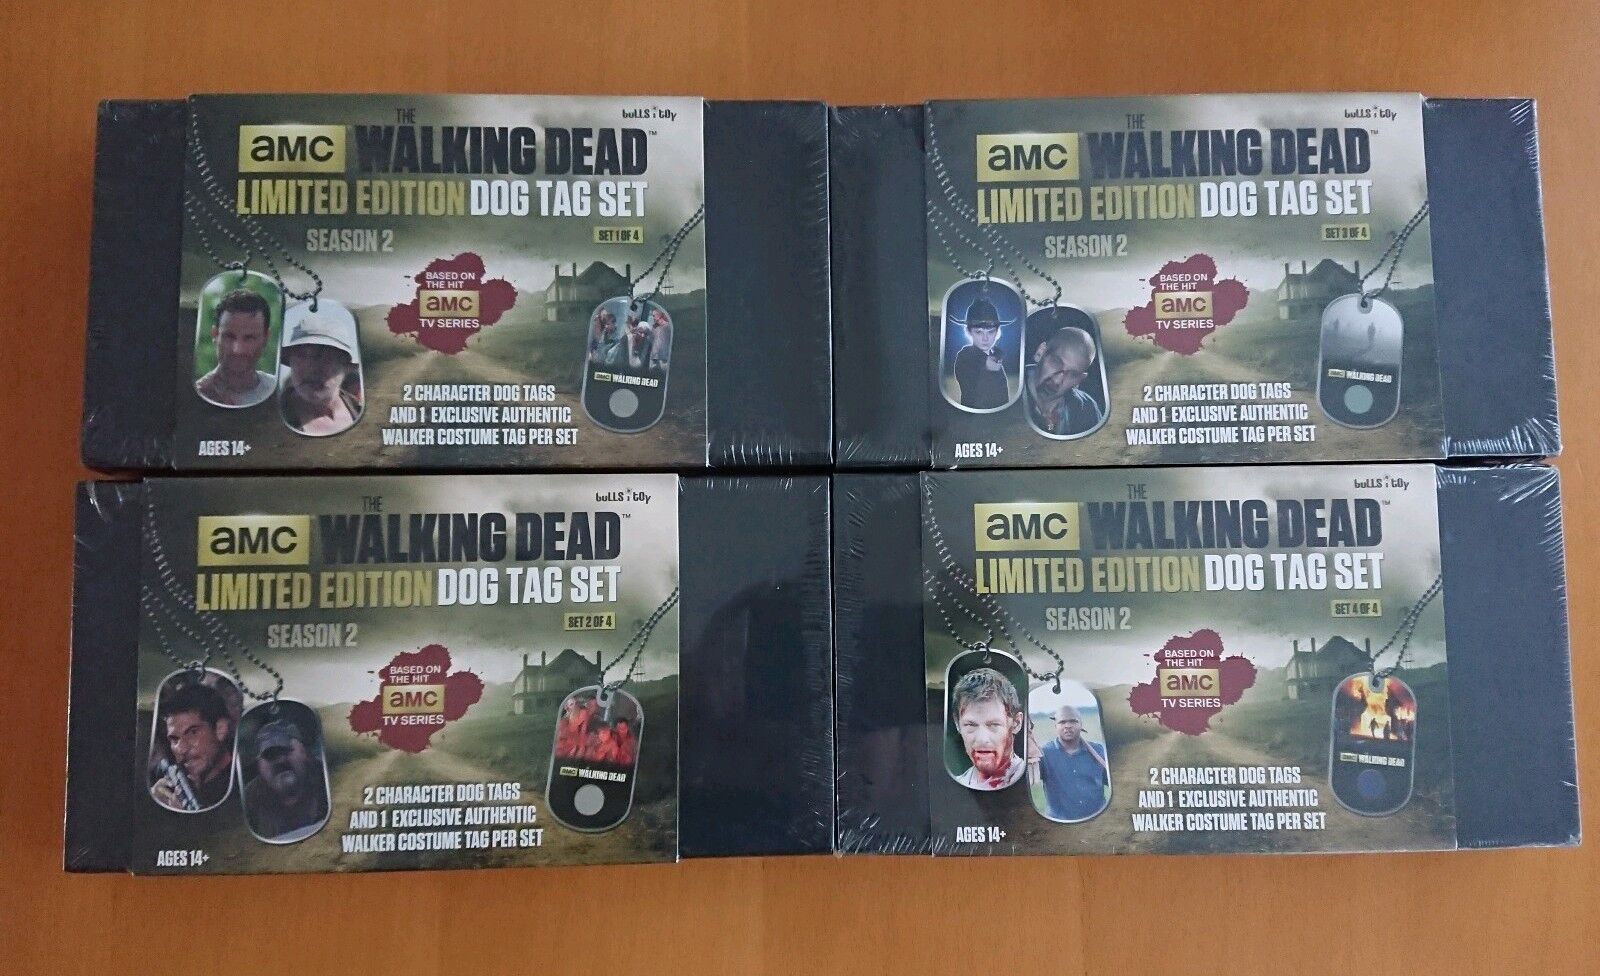 RARE NEW The Walking Dead SEALED Limited Edition Dog Tags Lot (4 boxes) costume